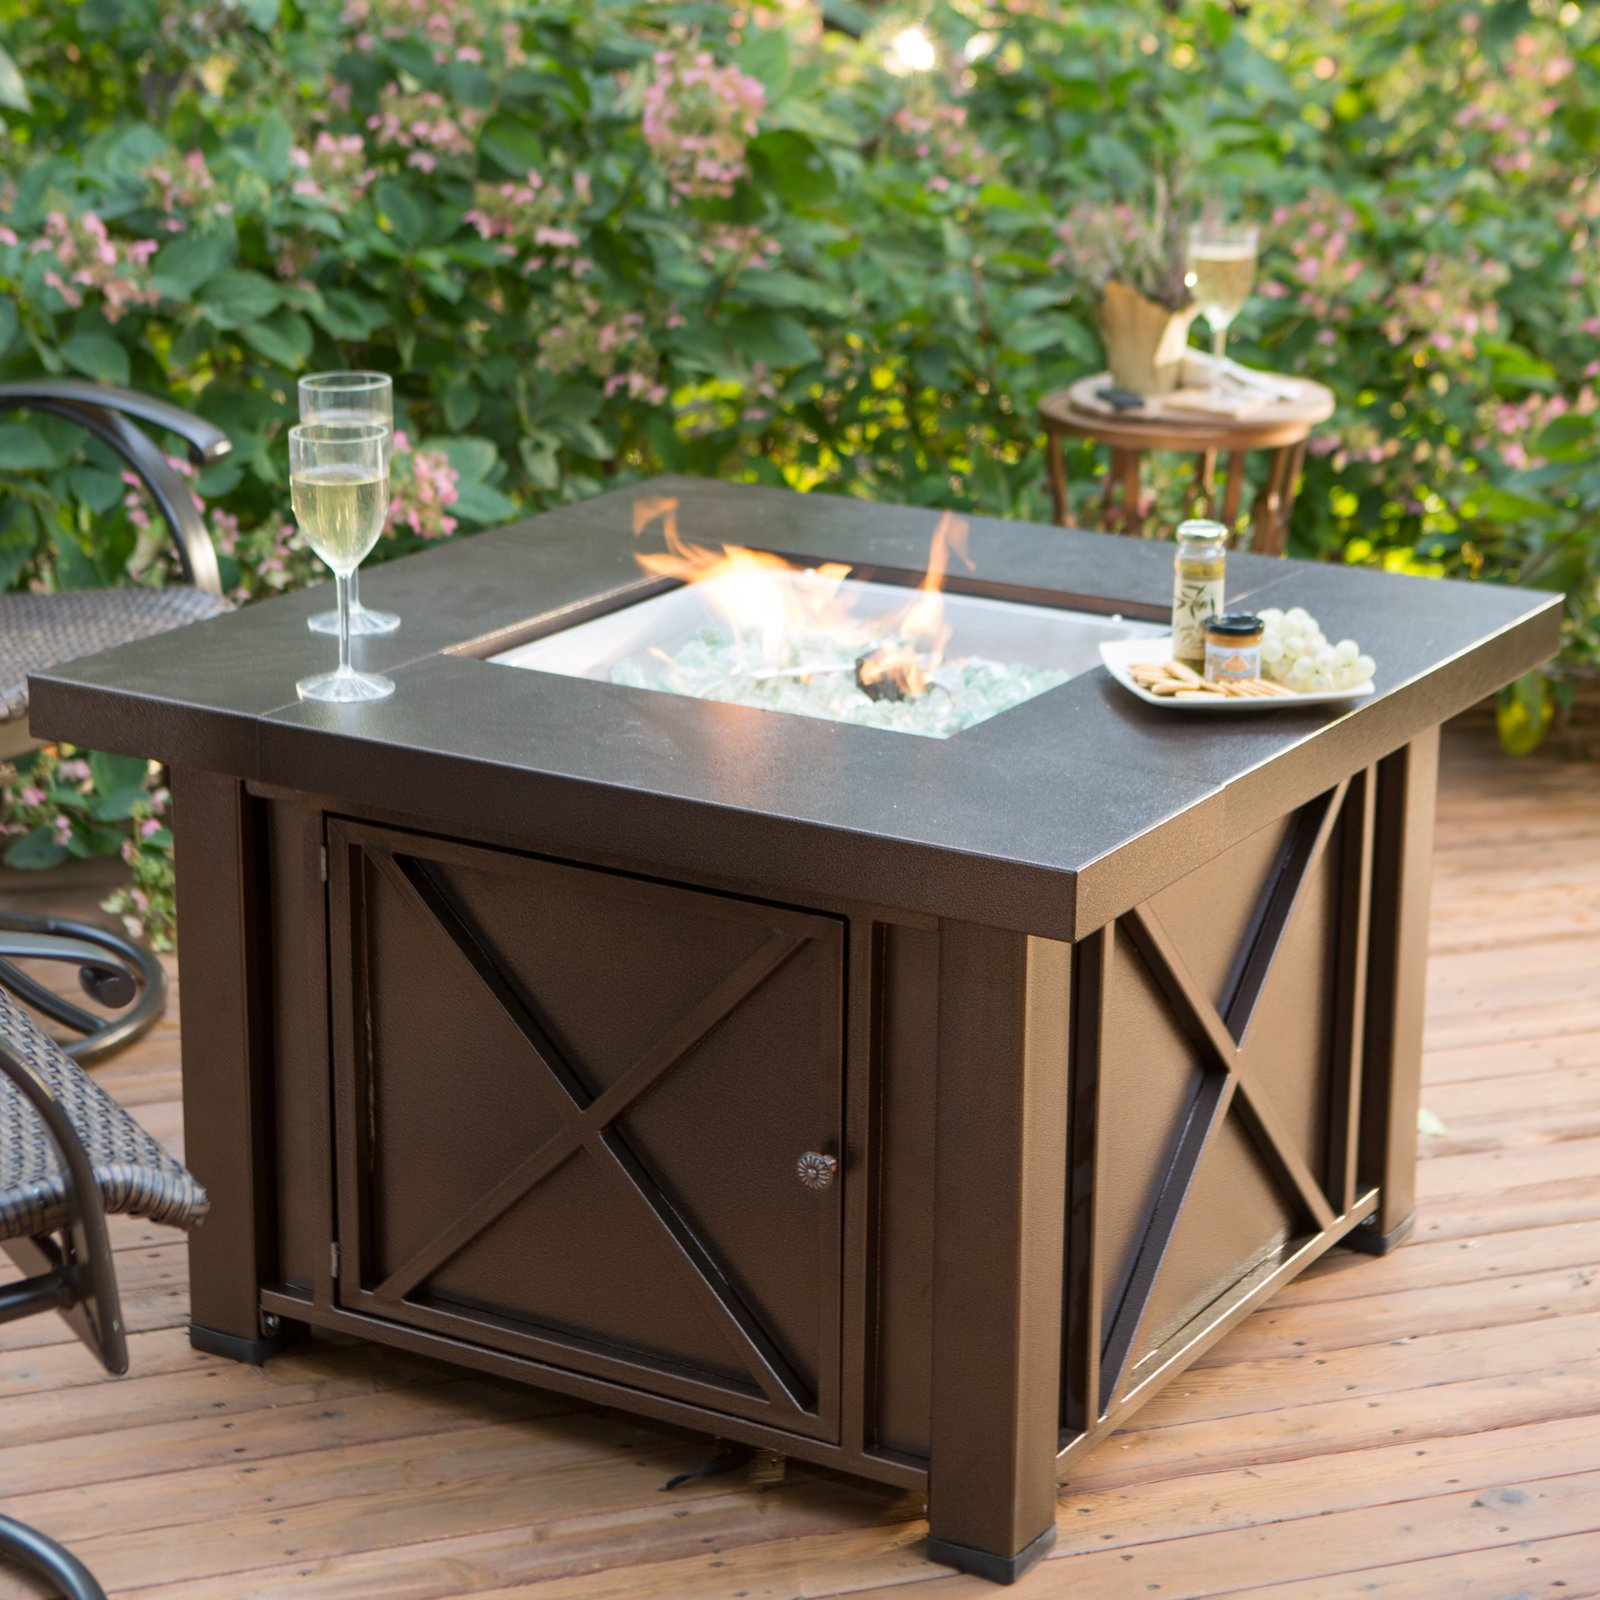 Hiland Decorative Firepit Hammered Bronze Finish by AZ Patio Heaters